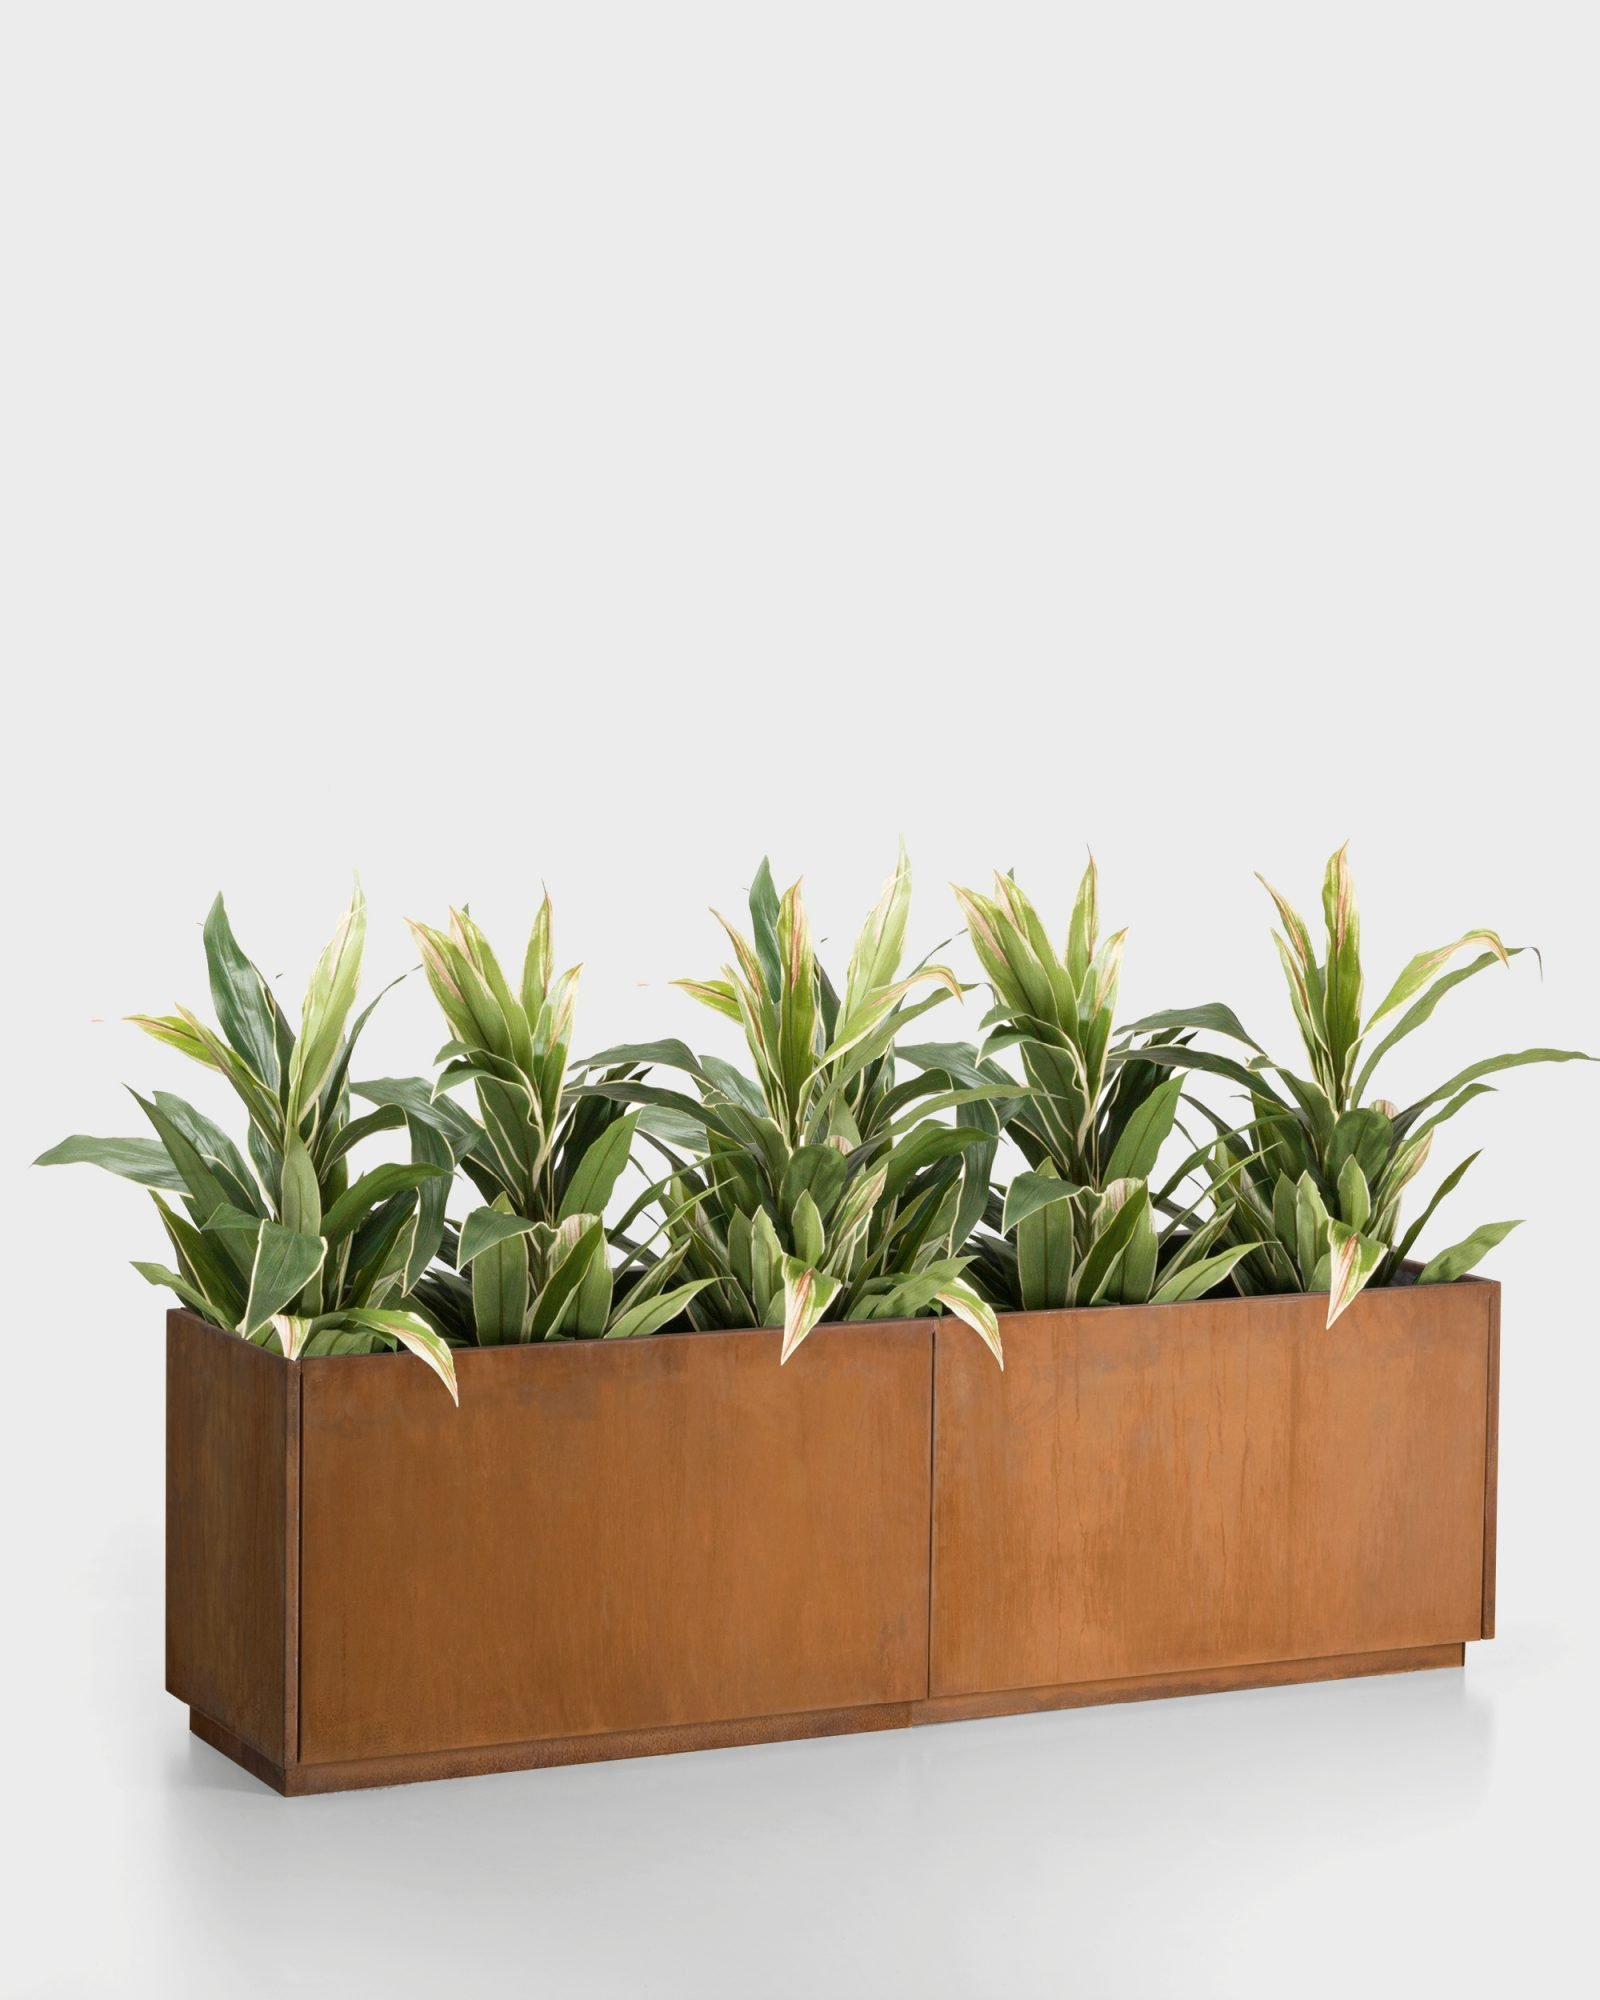 A-Modulo Pot planter from De Castelli, designed by R&D De Castelli